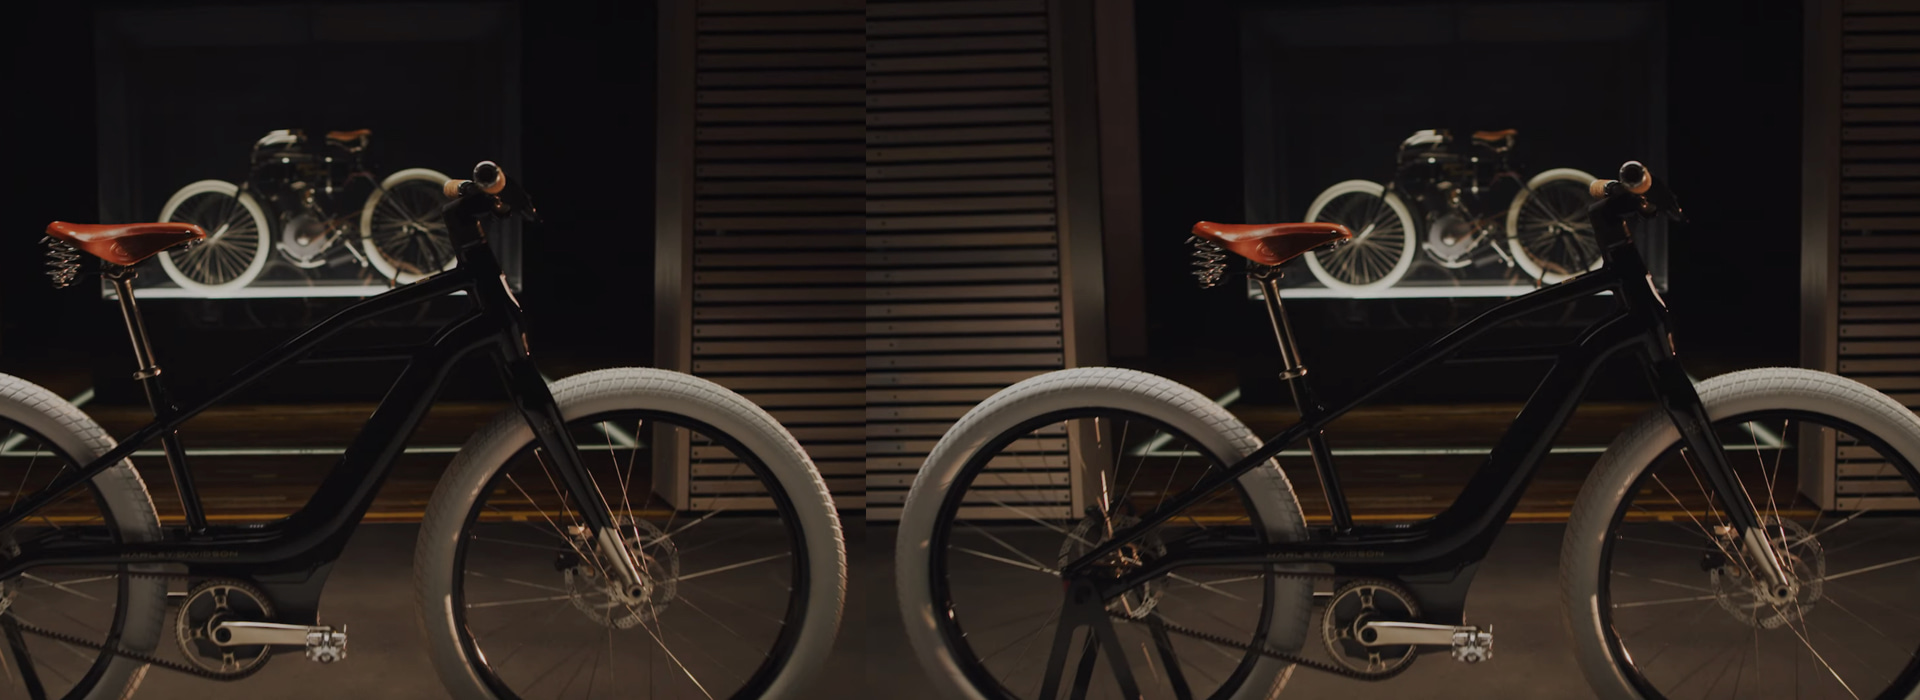 Harley-Davidson's first-ever e-bike promises to change the way you move thru the city.